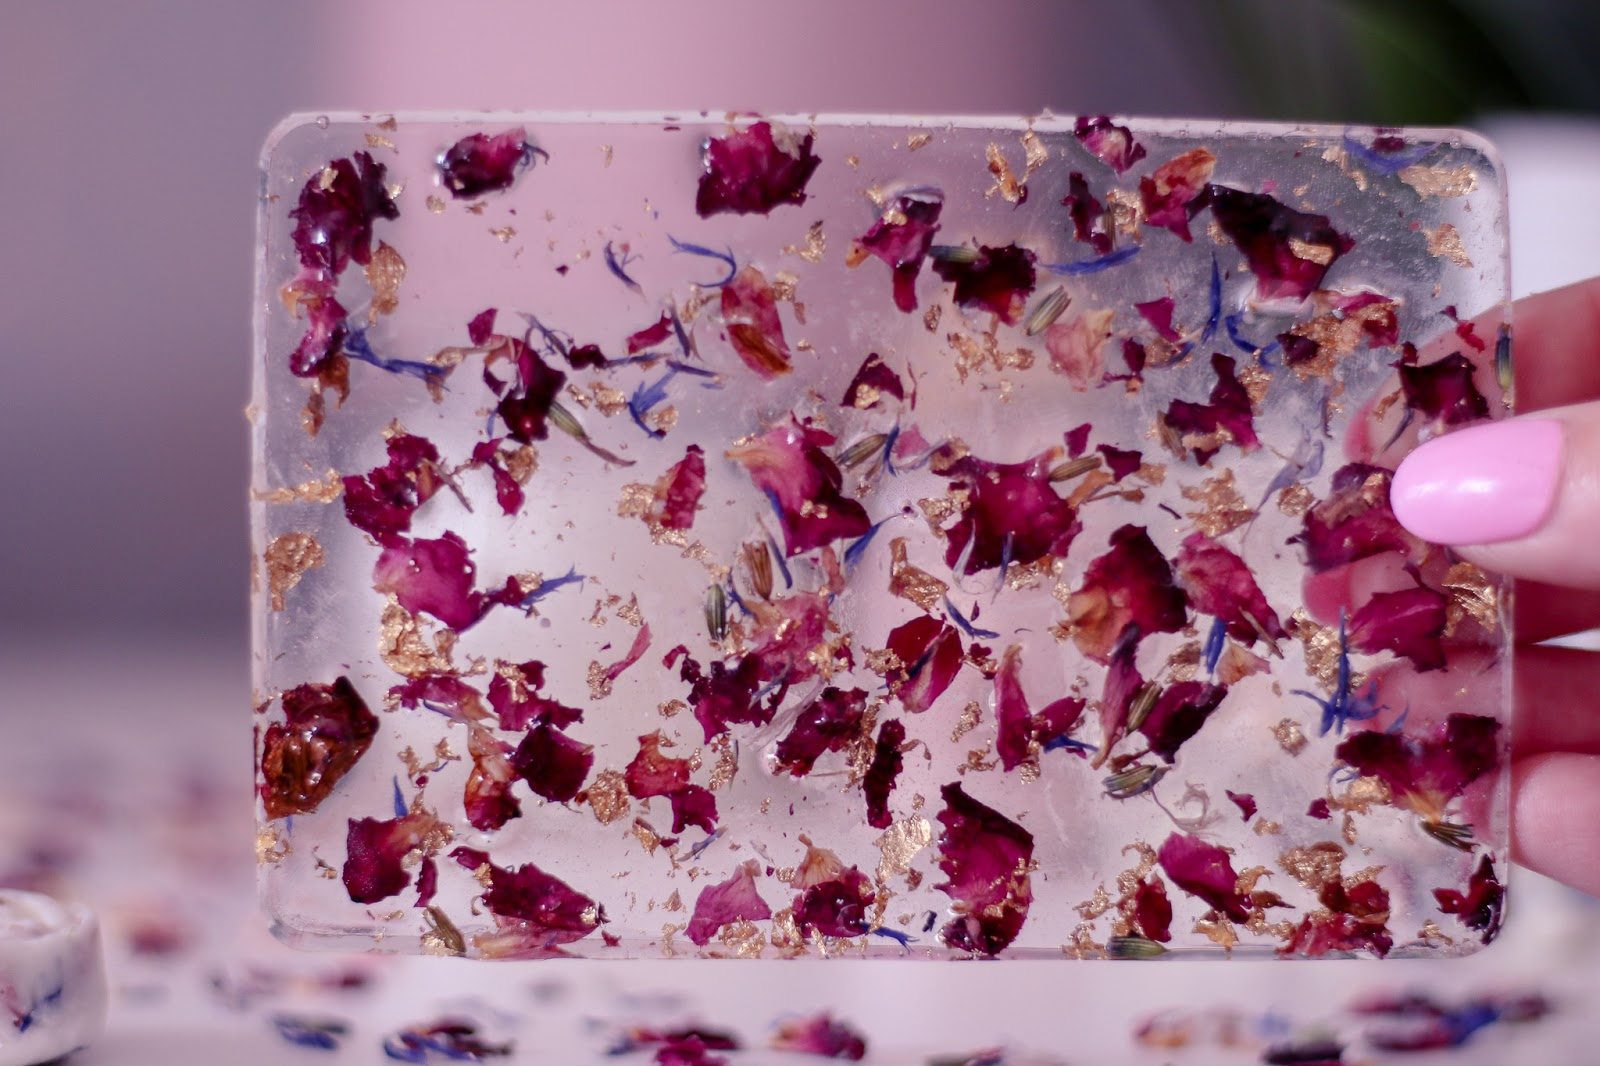 Close up photo of the resin tray with flower petals in it from Zi beauty